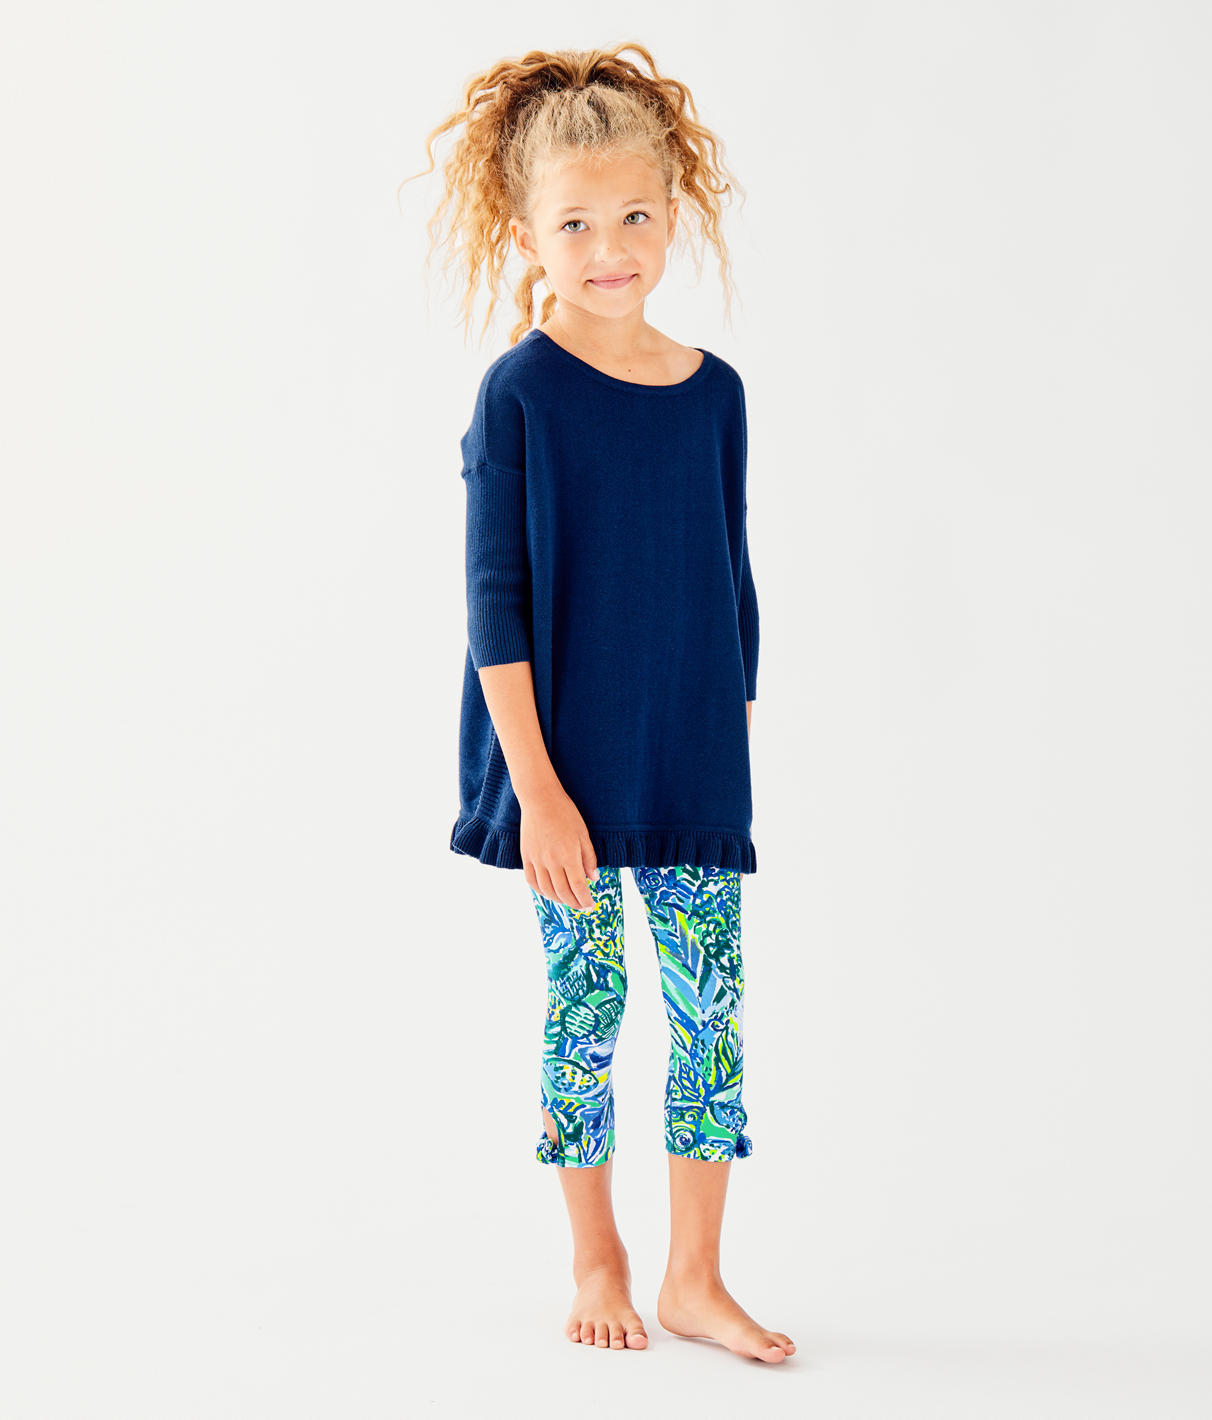 Lilly Pulitzer Lilly Pulitzer Girls Maia Legging